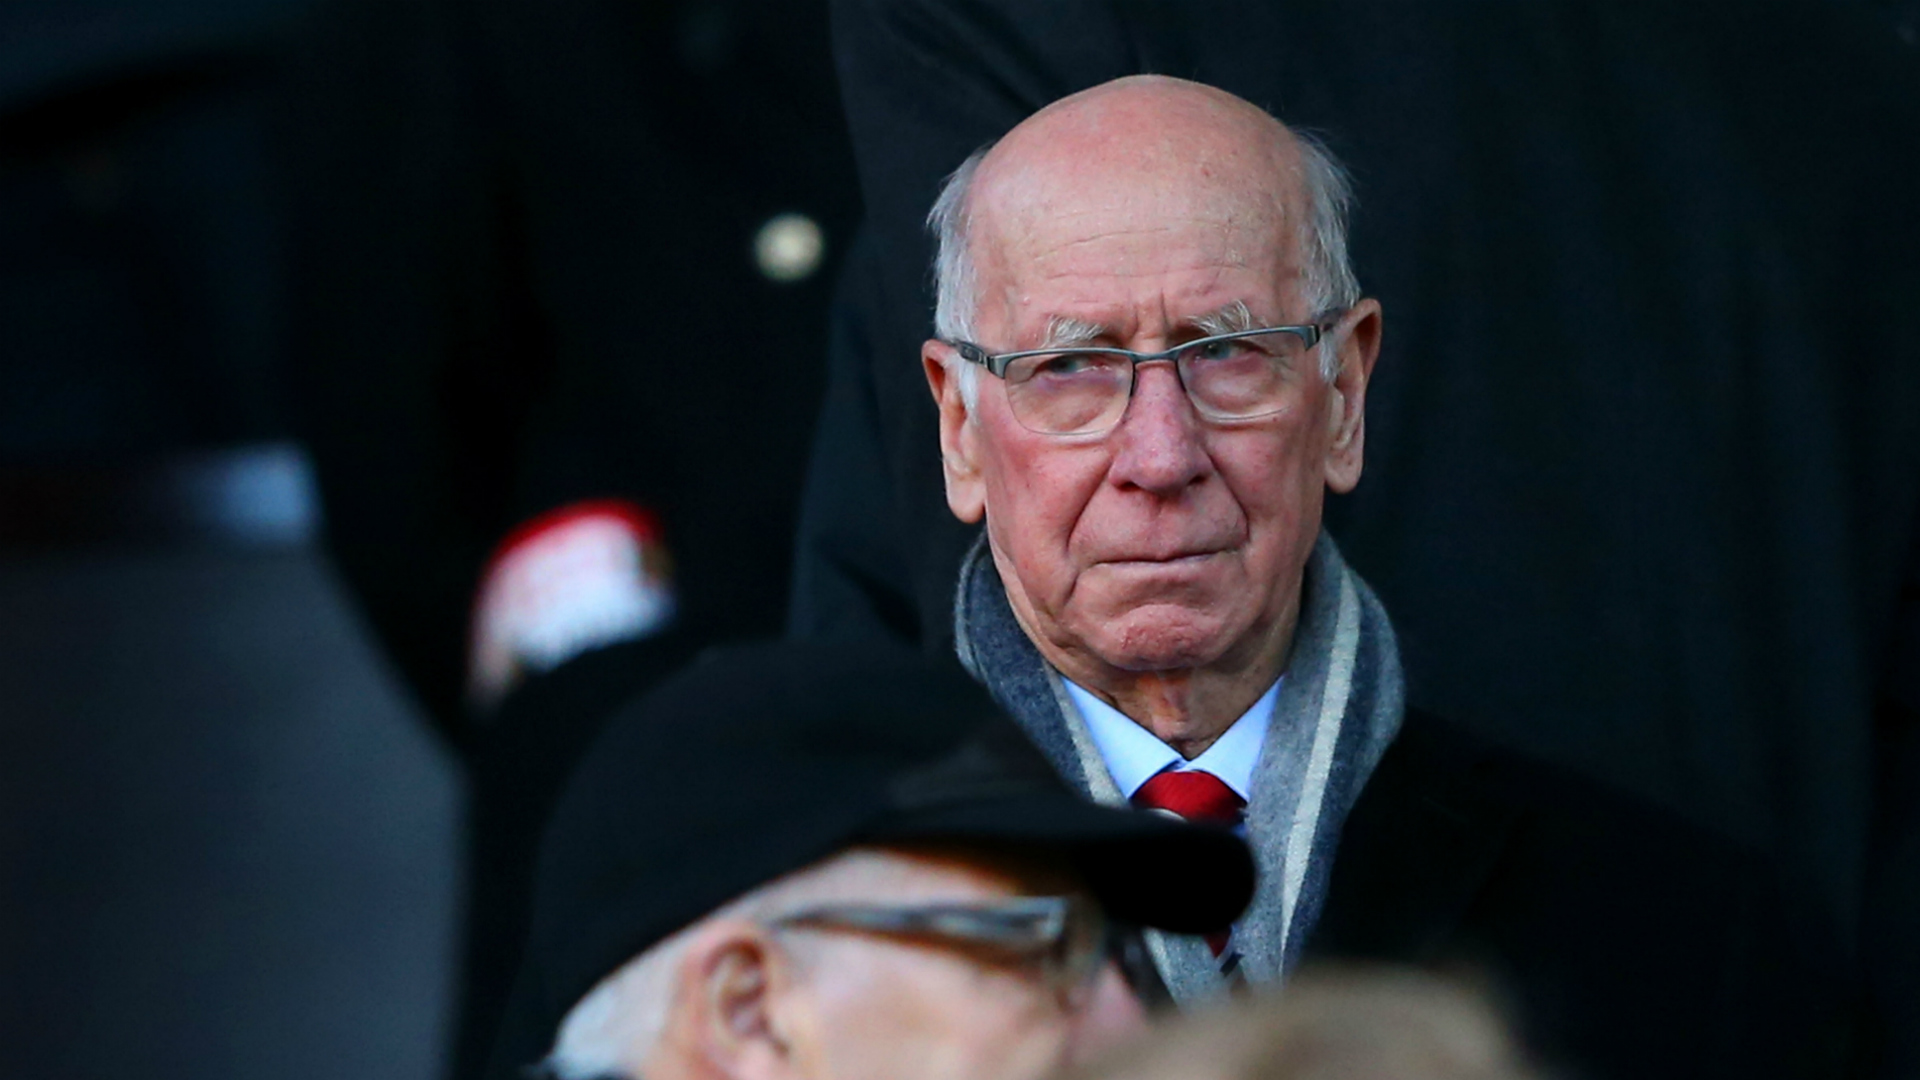 Man Utd to name stand after Sir Bobby Charlton